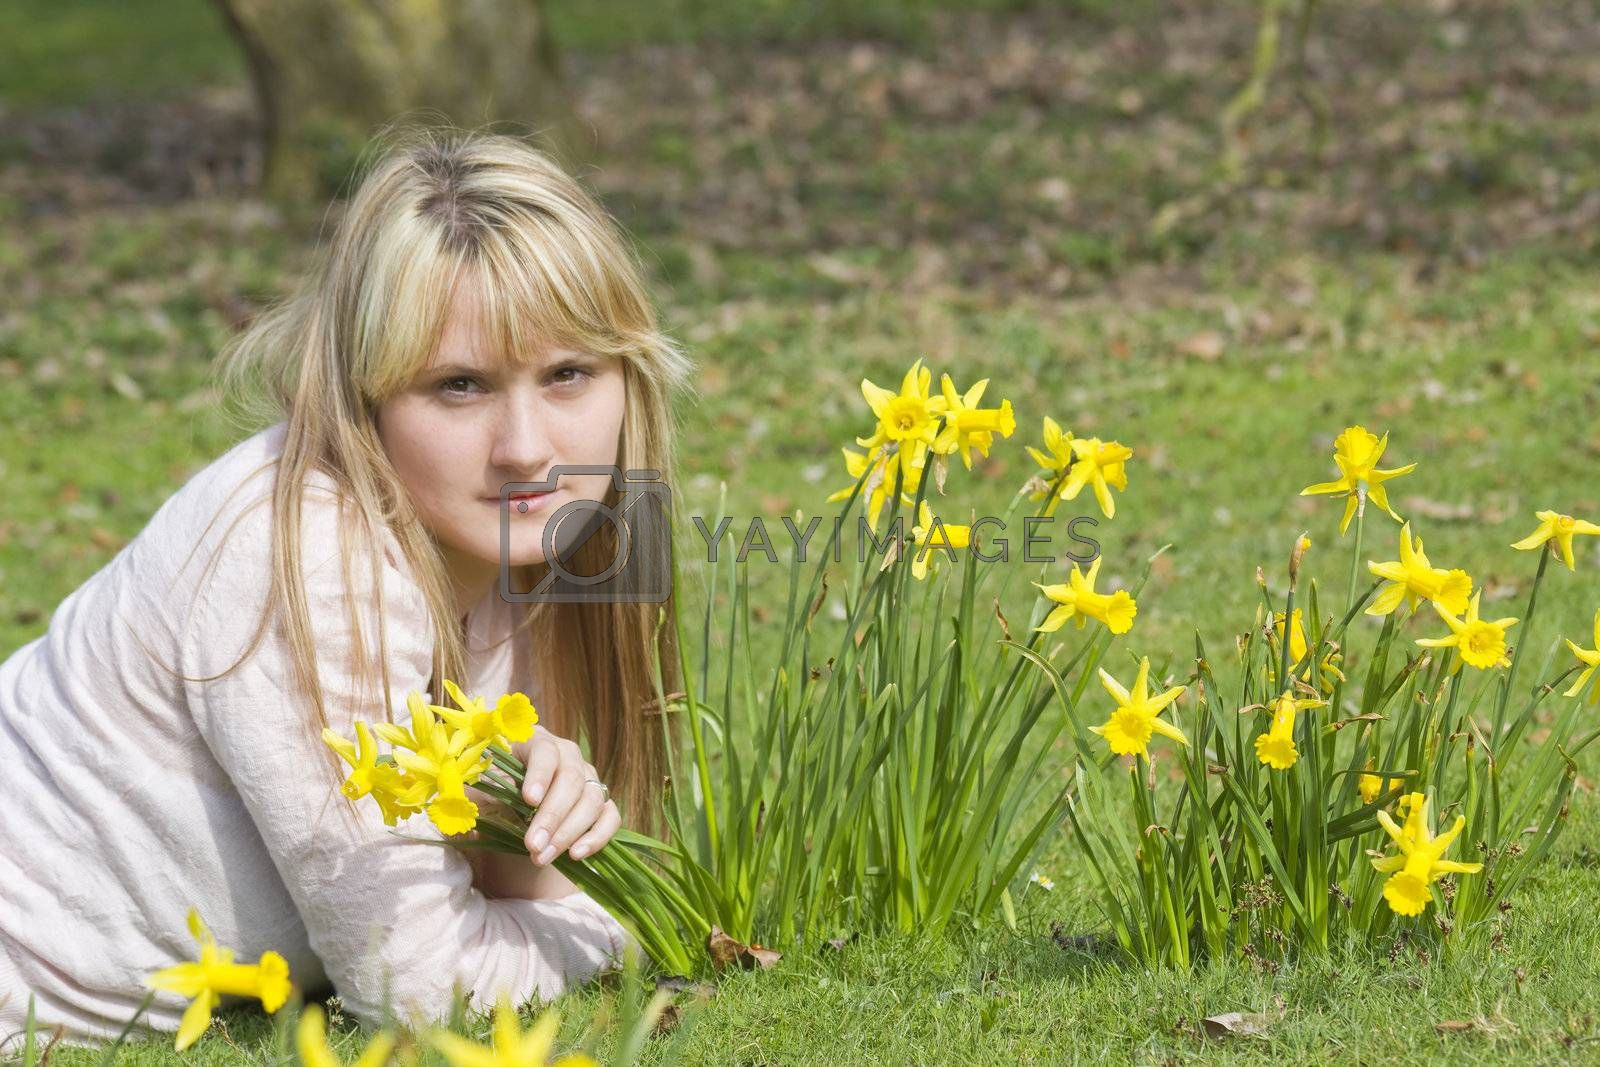 beautiful young woman with flowers on a warm spring day